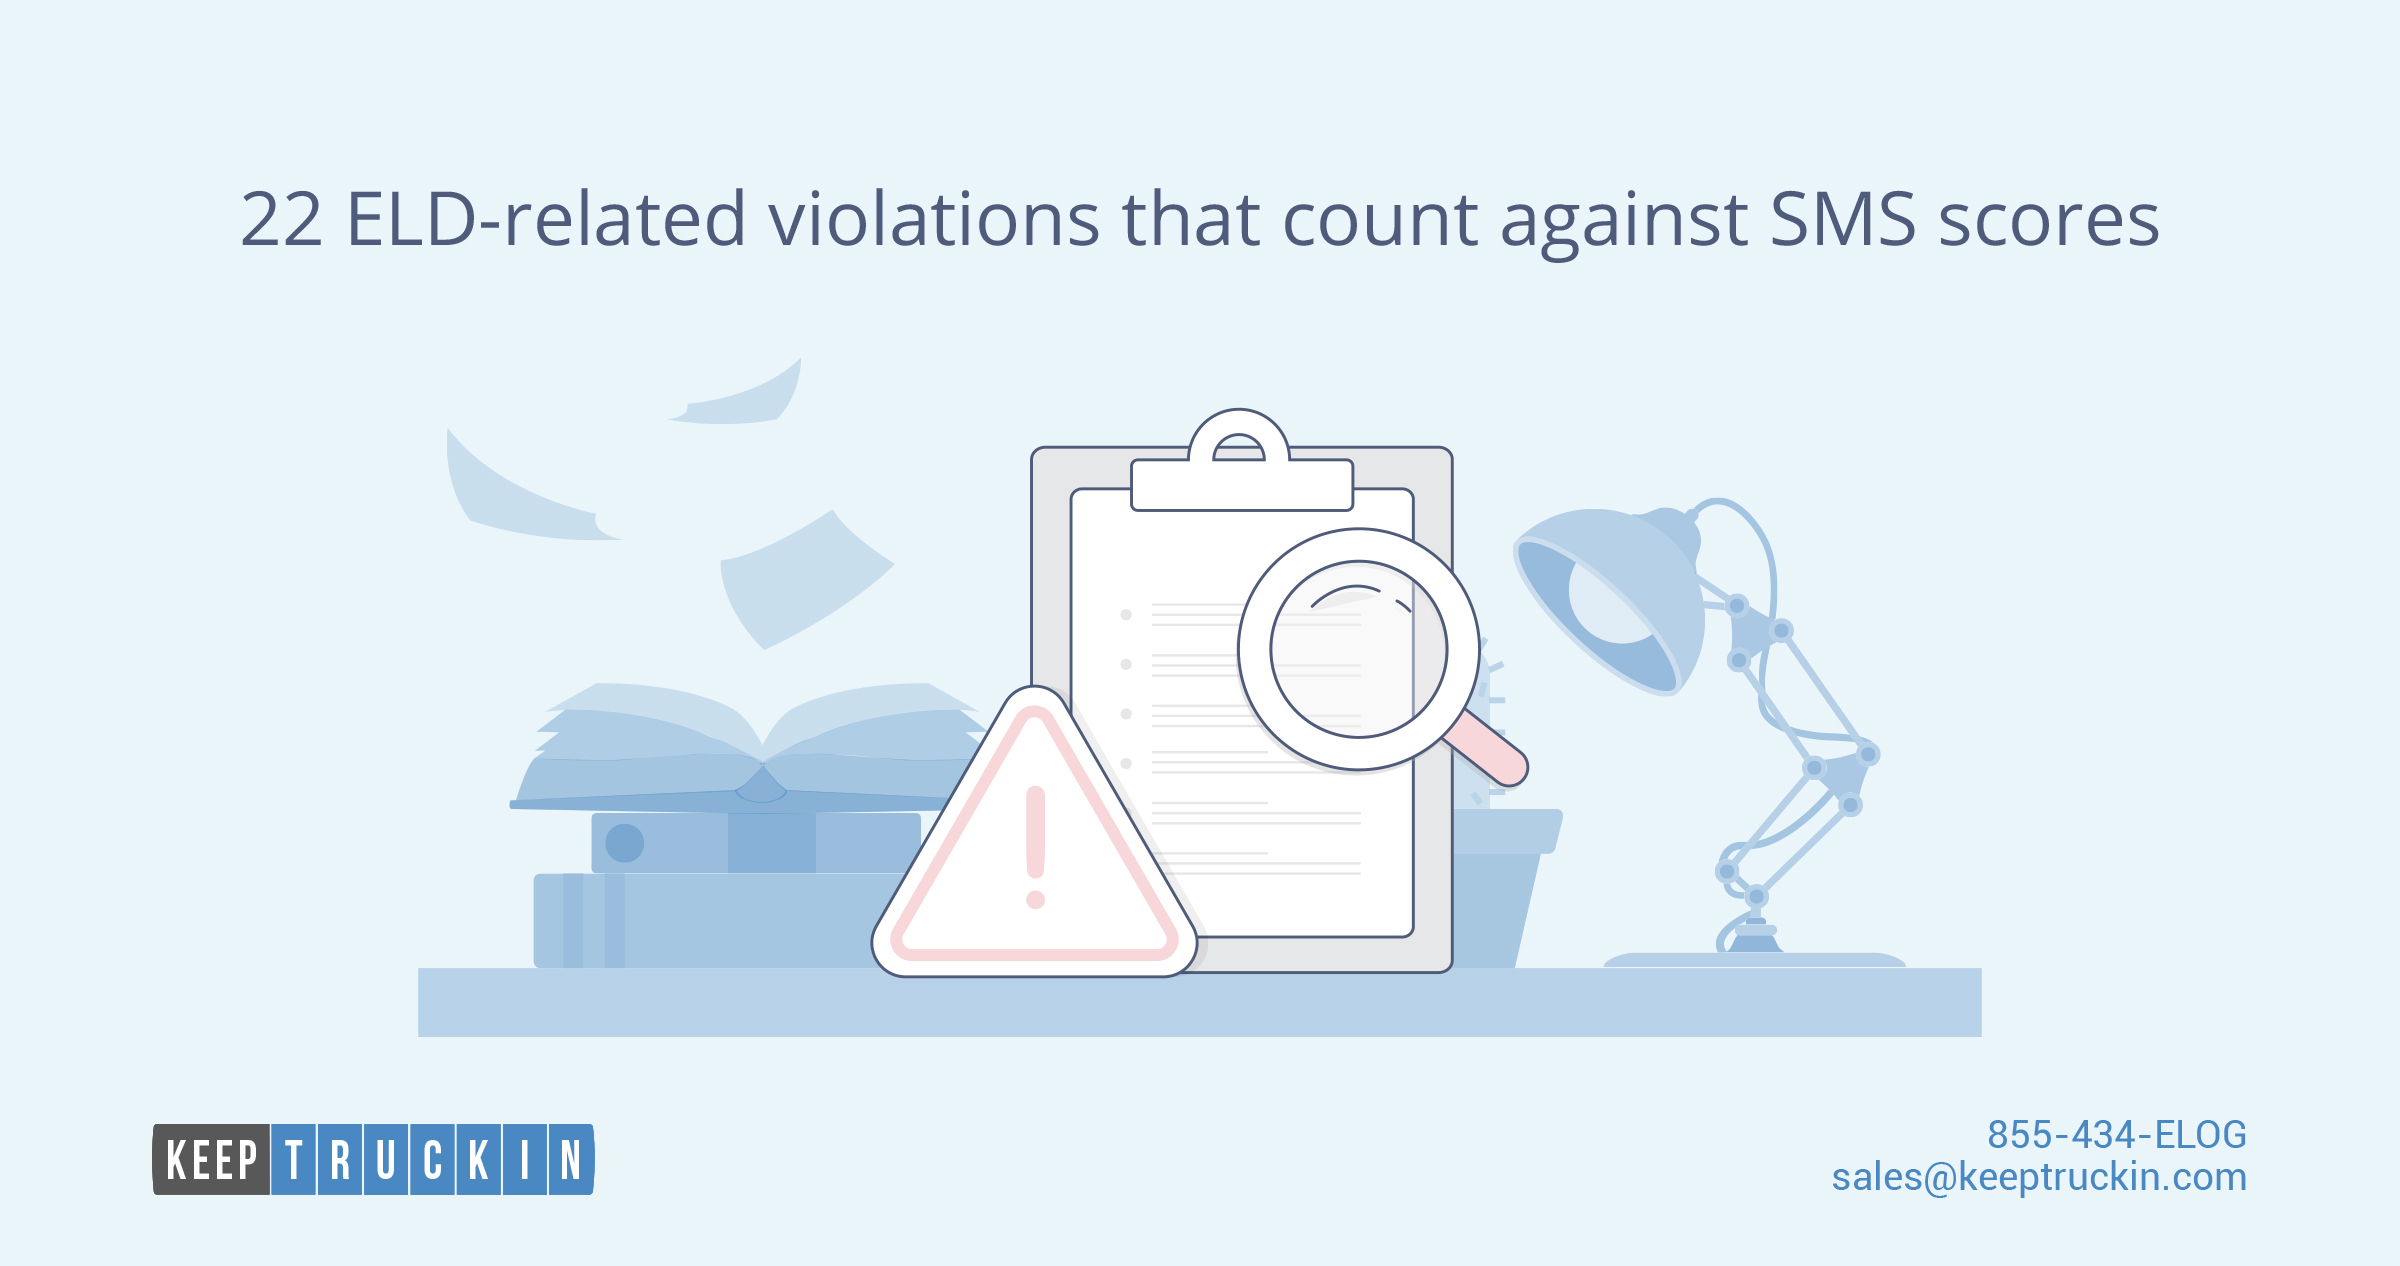 22 ELD-related violations that count against SMS scores